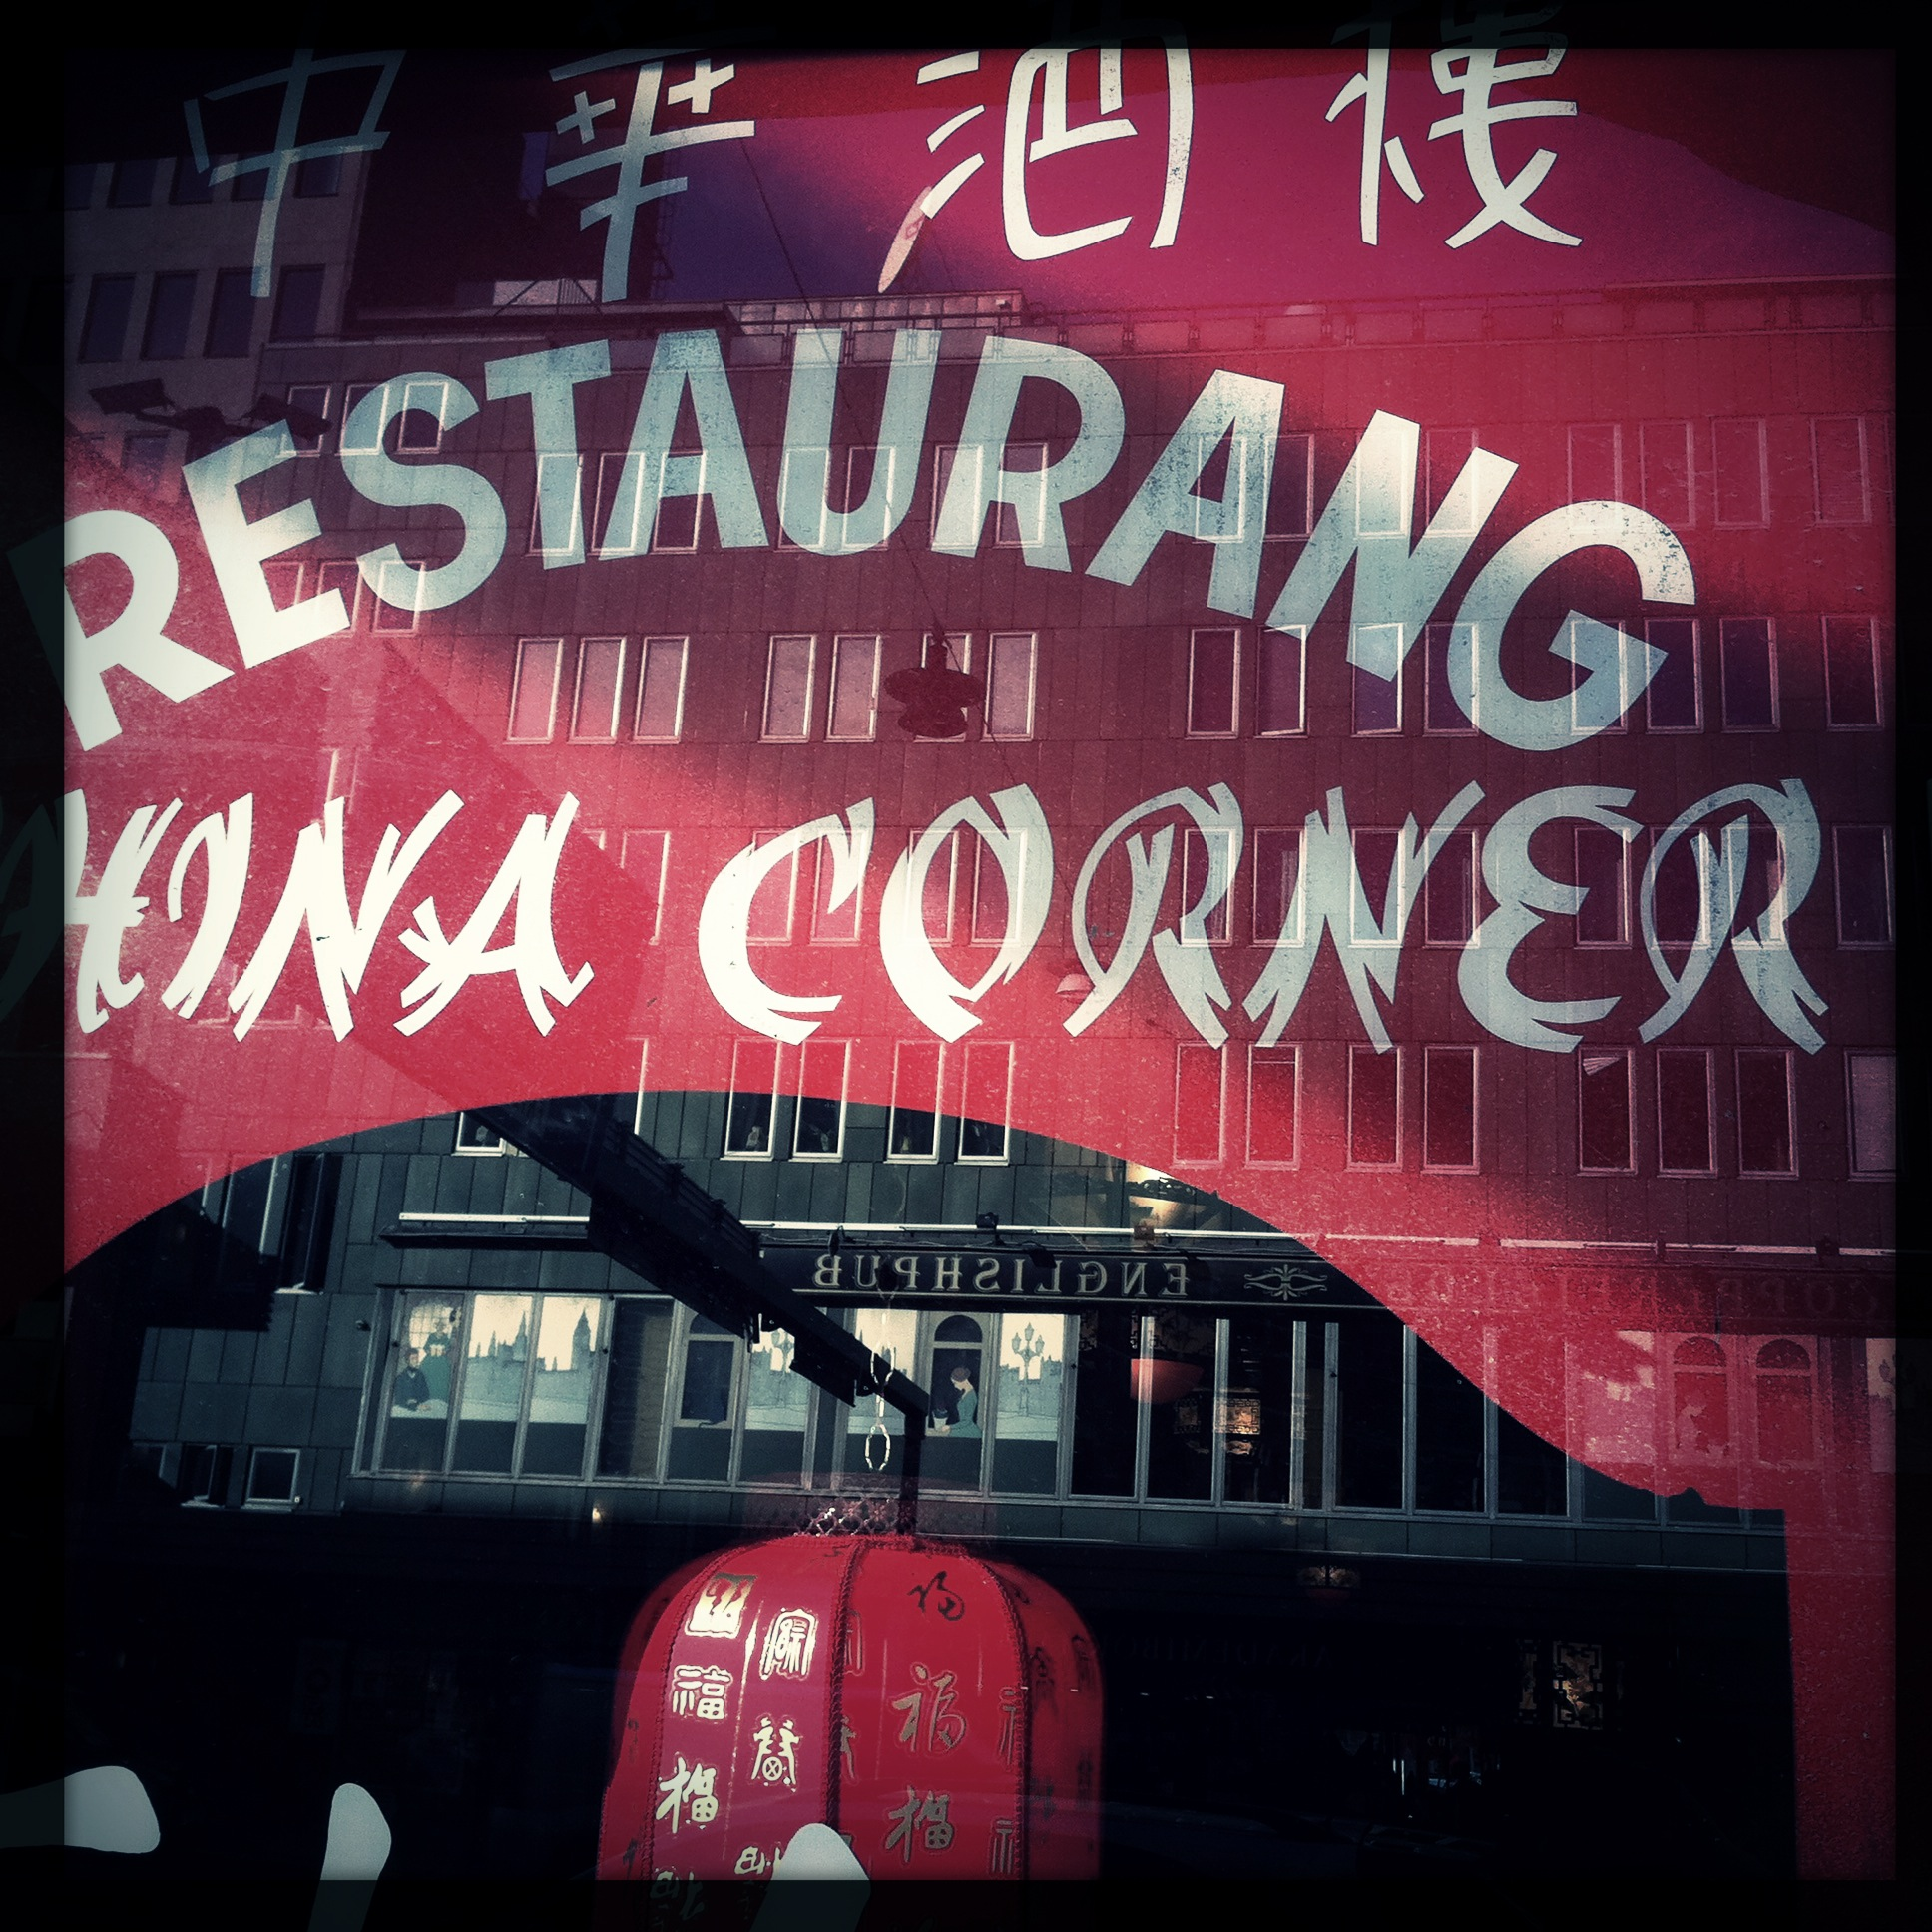 iPhoneography: China Corner